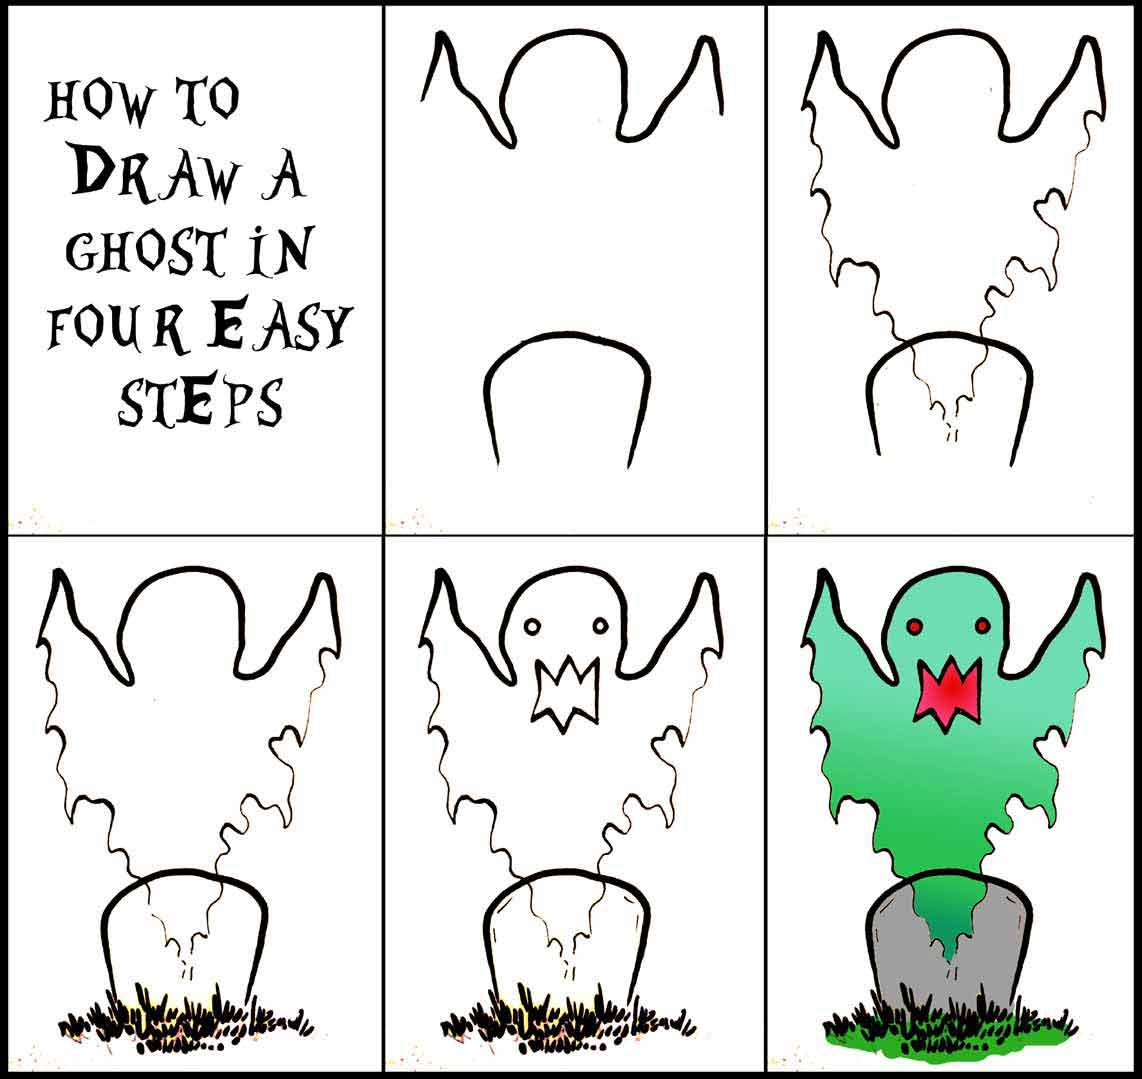 how to draw halloween ghost on paper in easy to follow four steps image